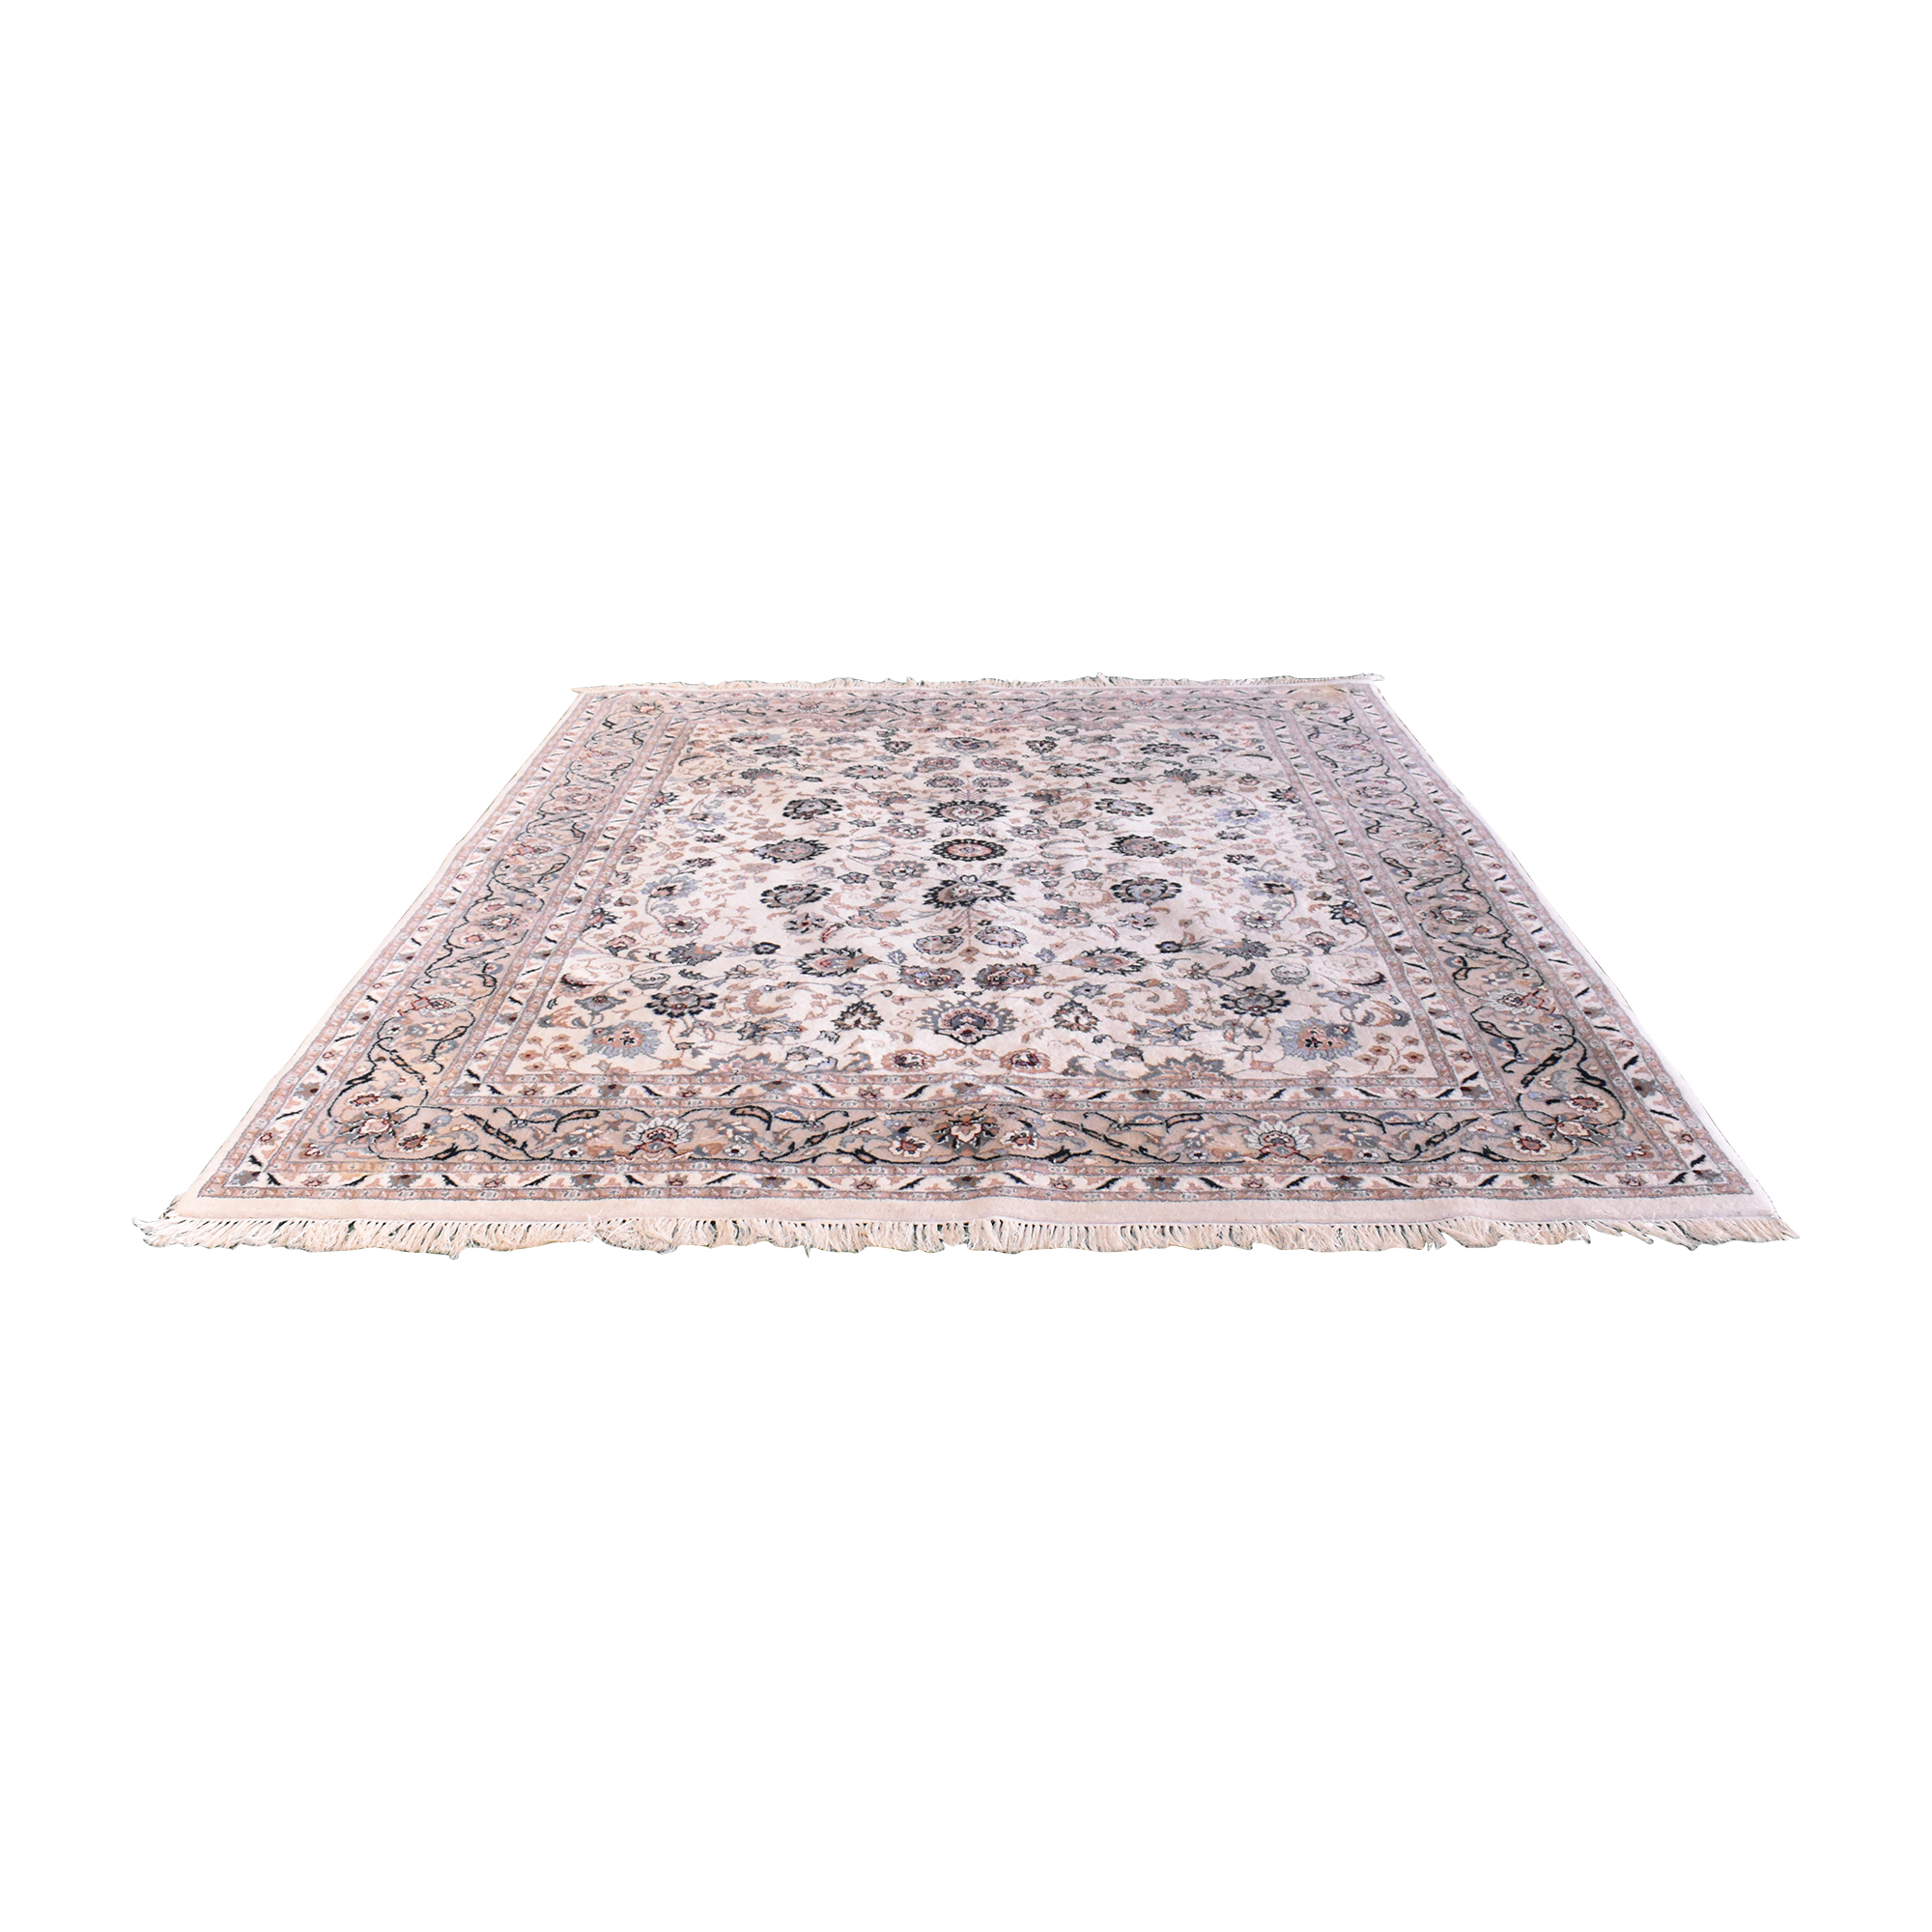 ABC Carpet & Home ABC Carpet & Home Area Rug nj